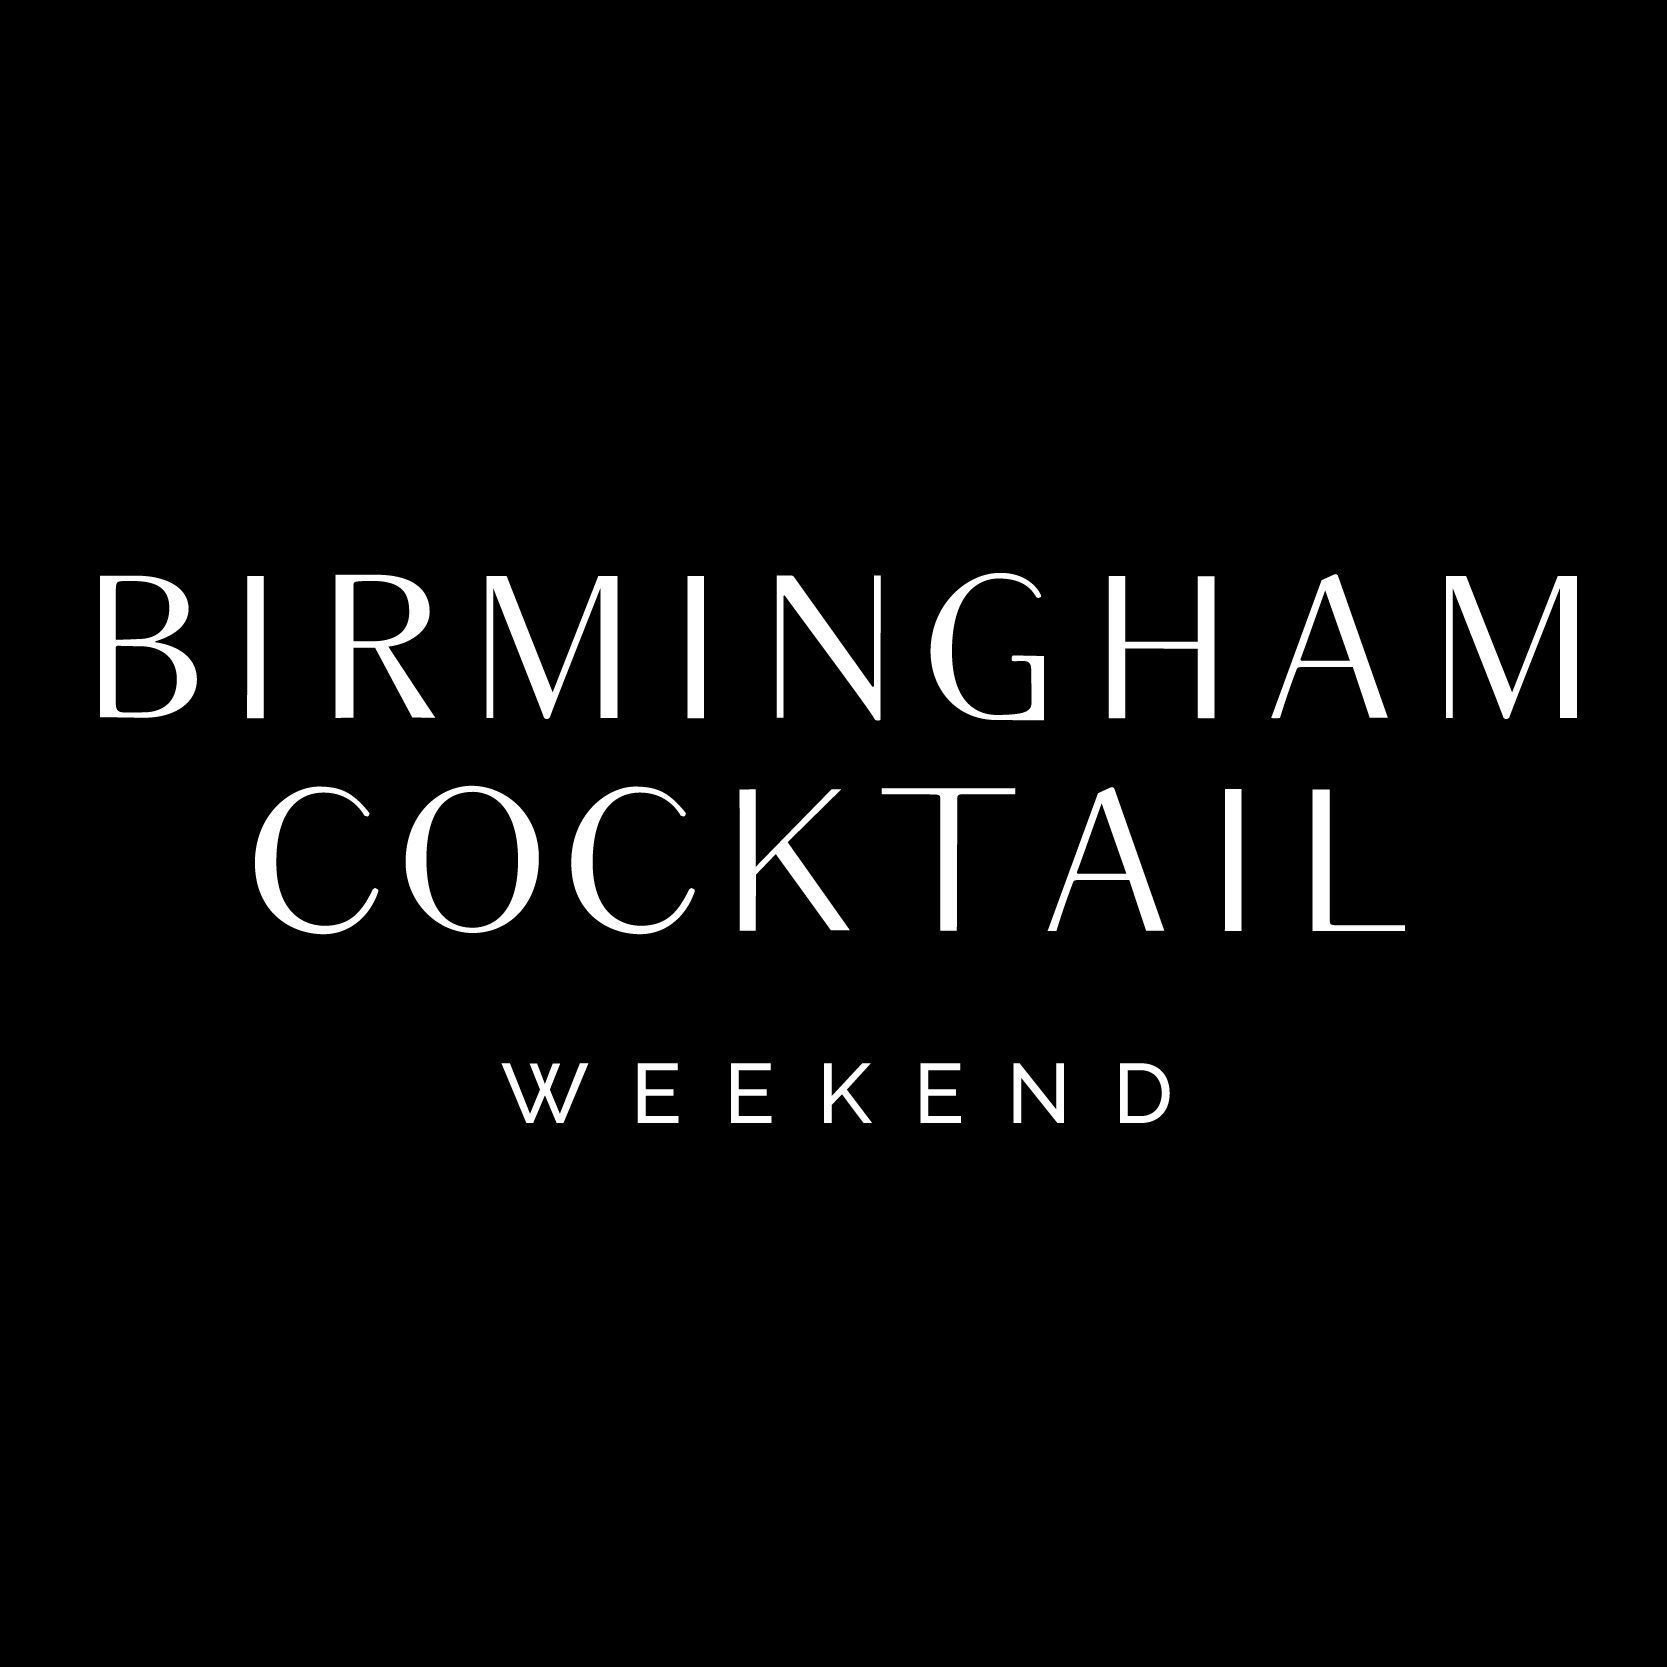 Birmingham Cocktail Weekend 2016